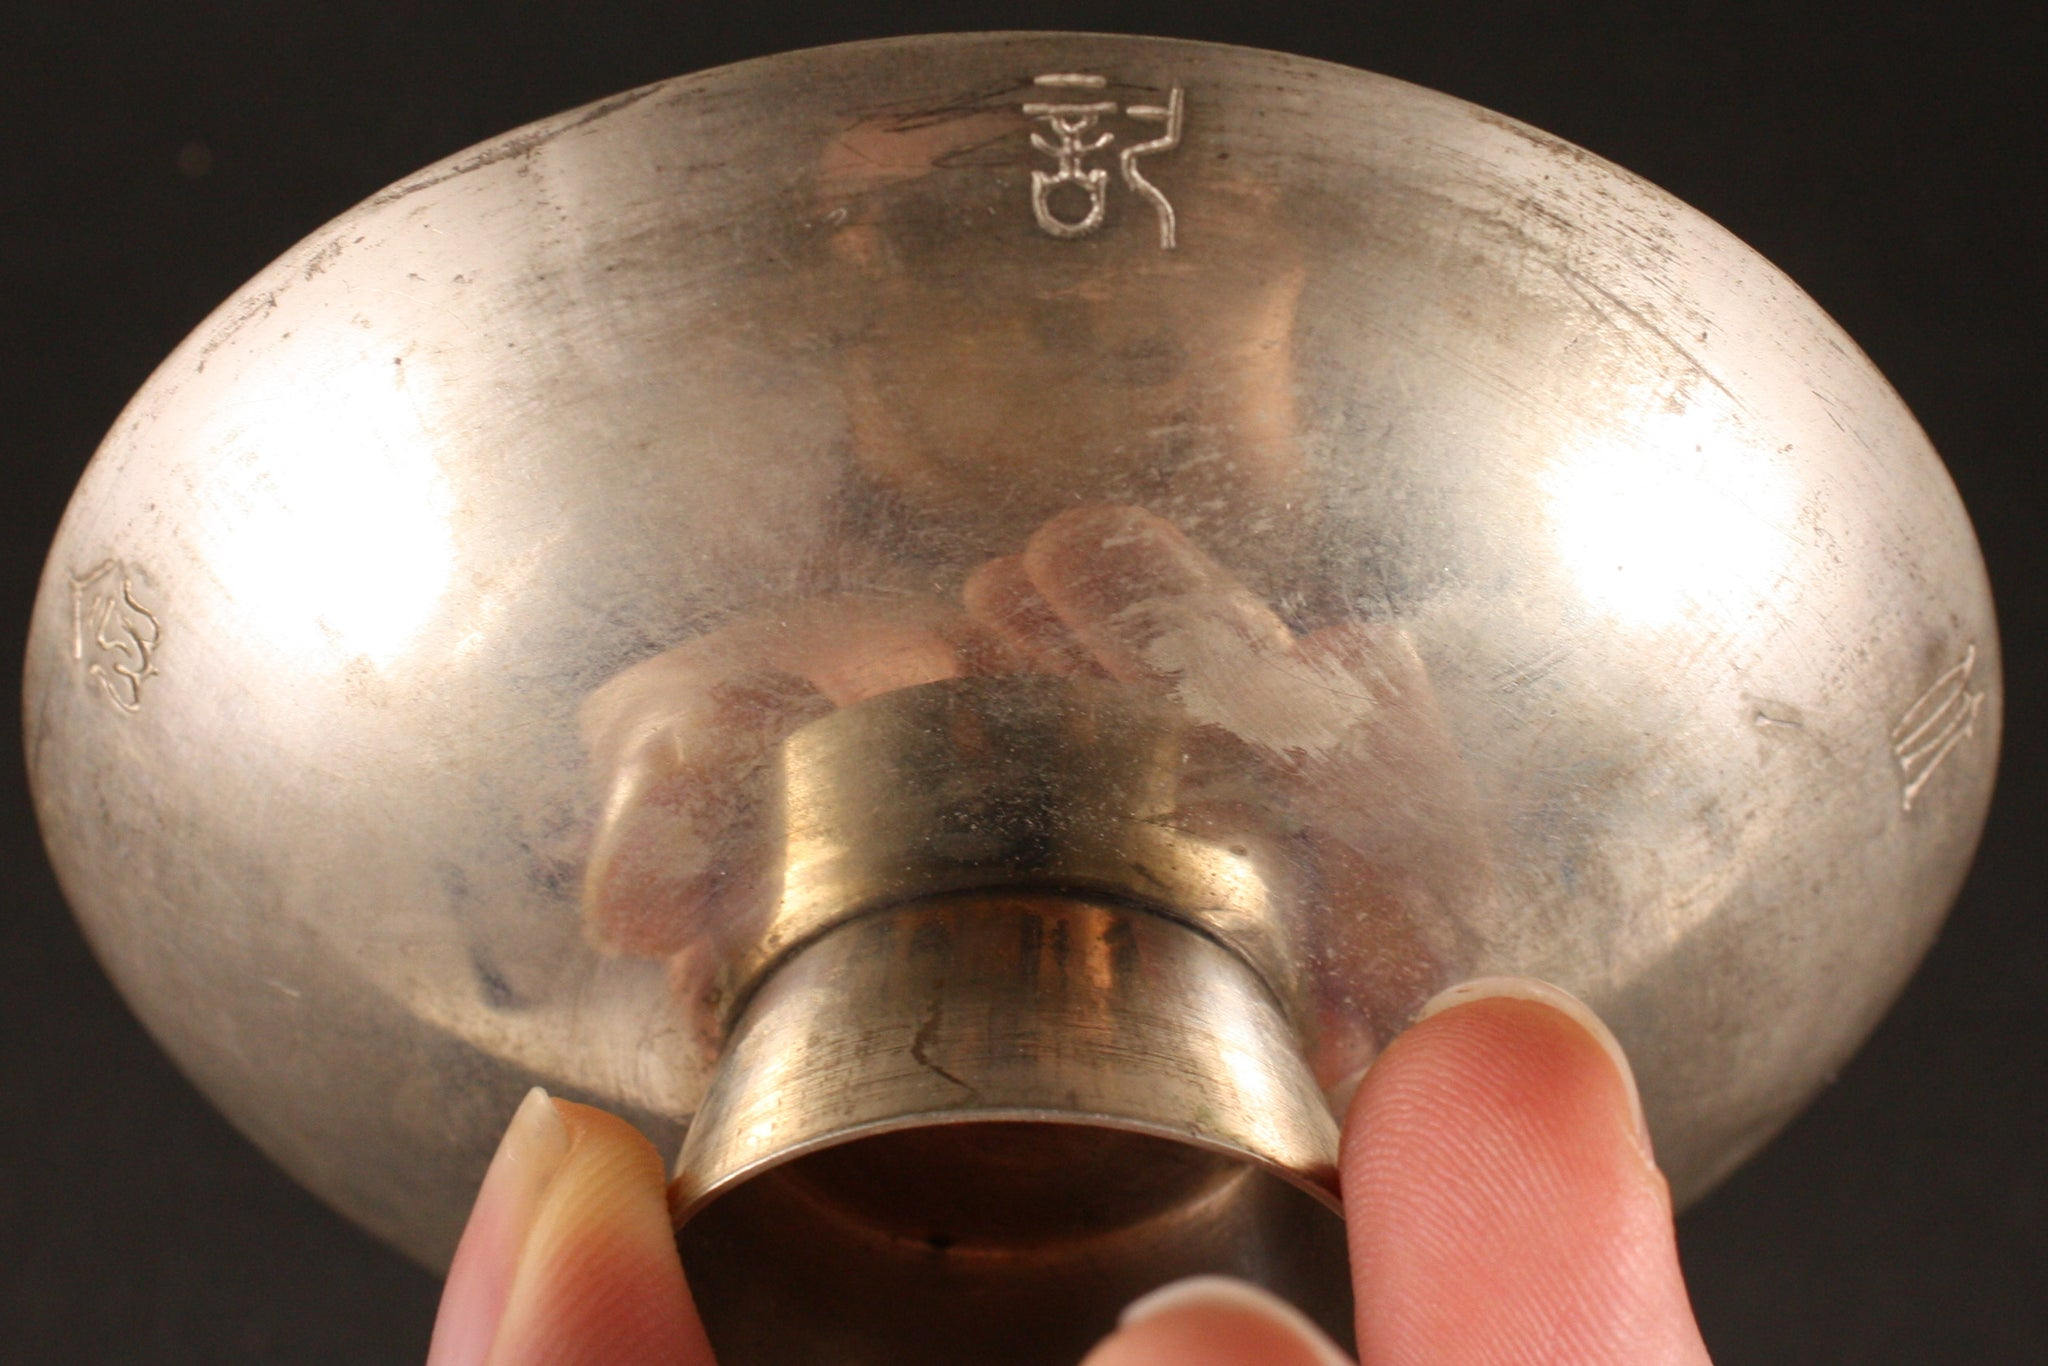 Antique Japanese Military Personnel Education Association Enthronment Silver Army Sake Cup